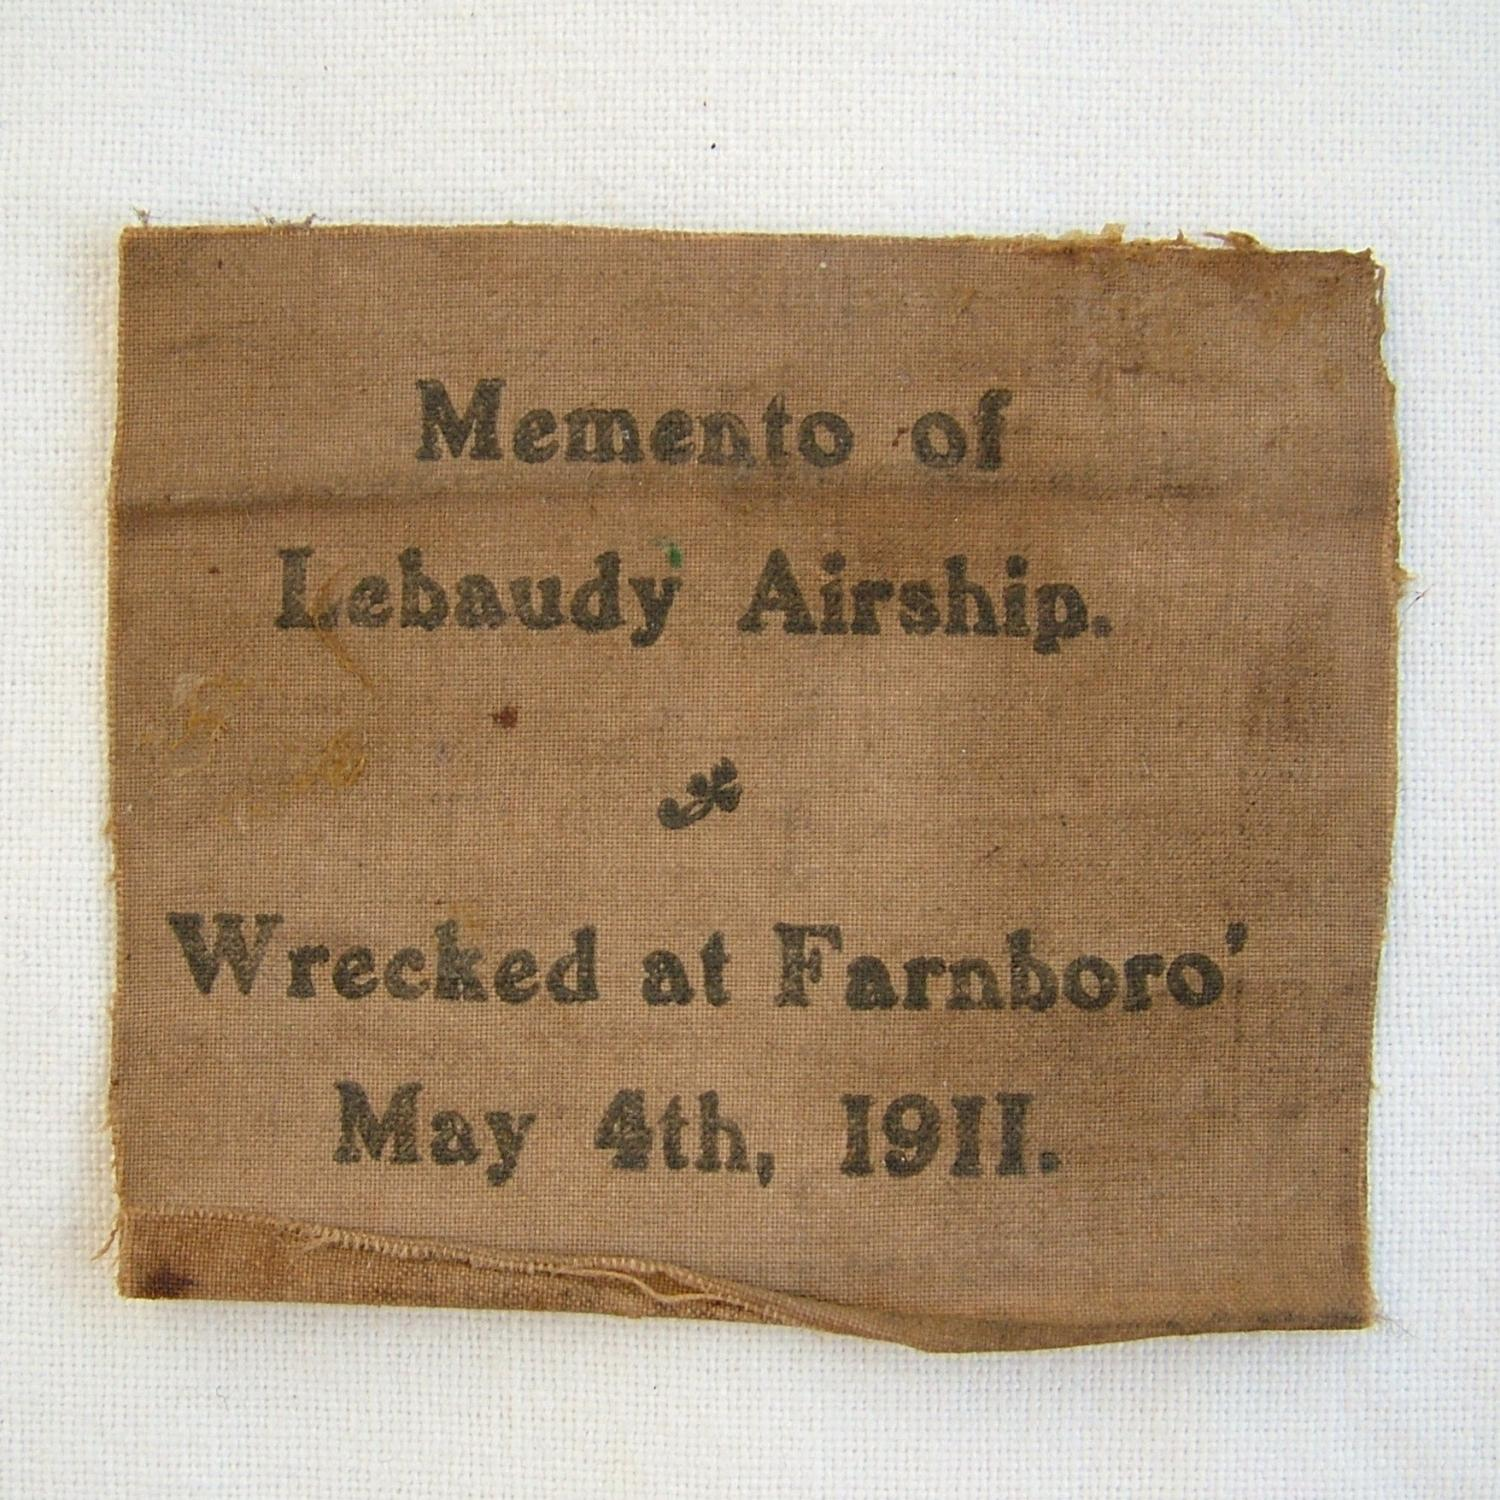 Fabric From LeBaudy Airship Crashed c.1911